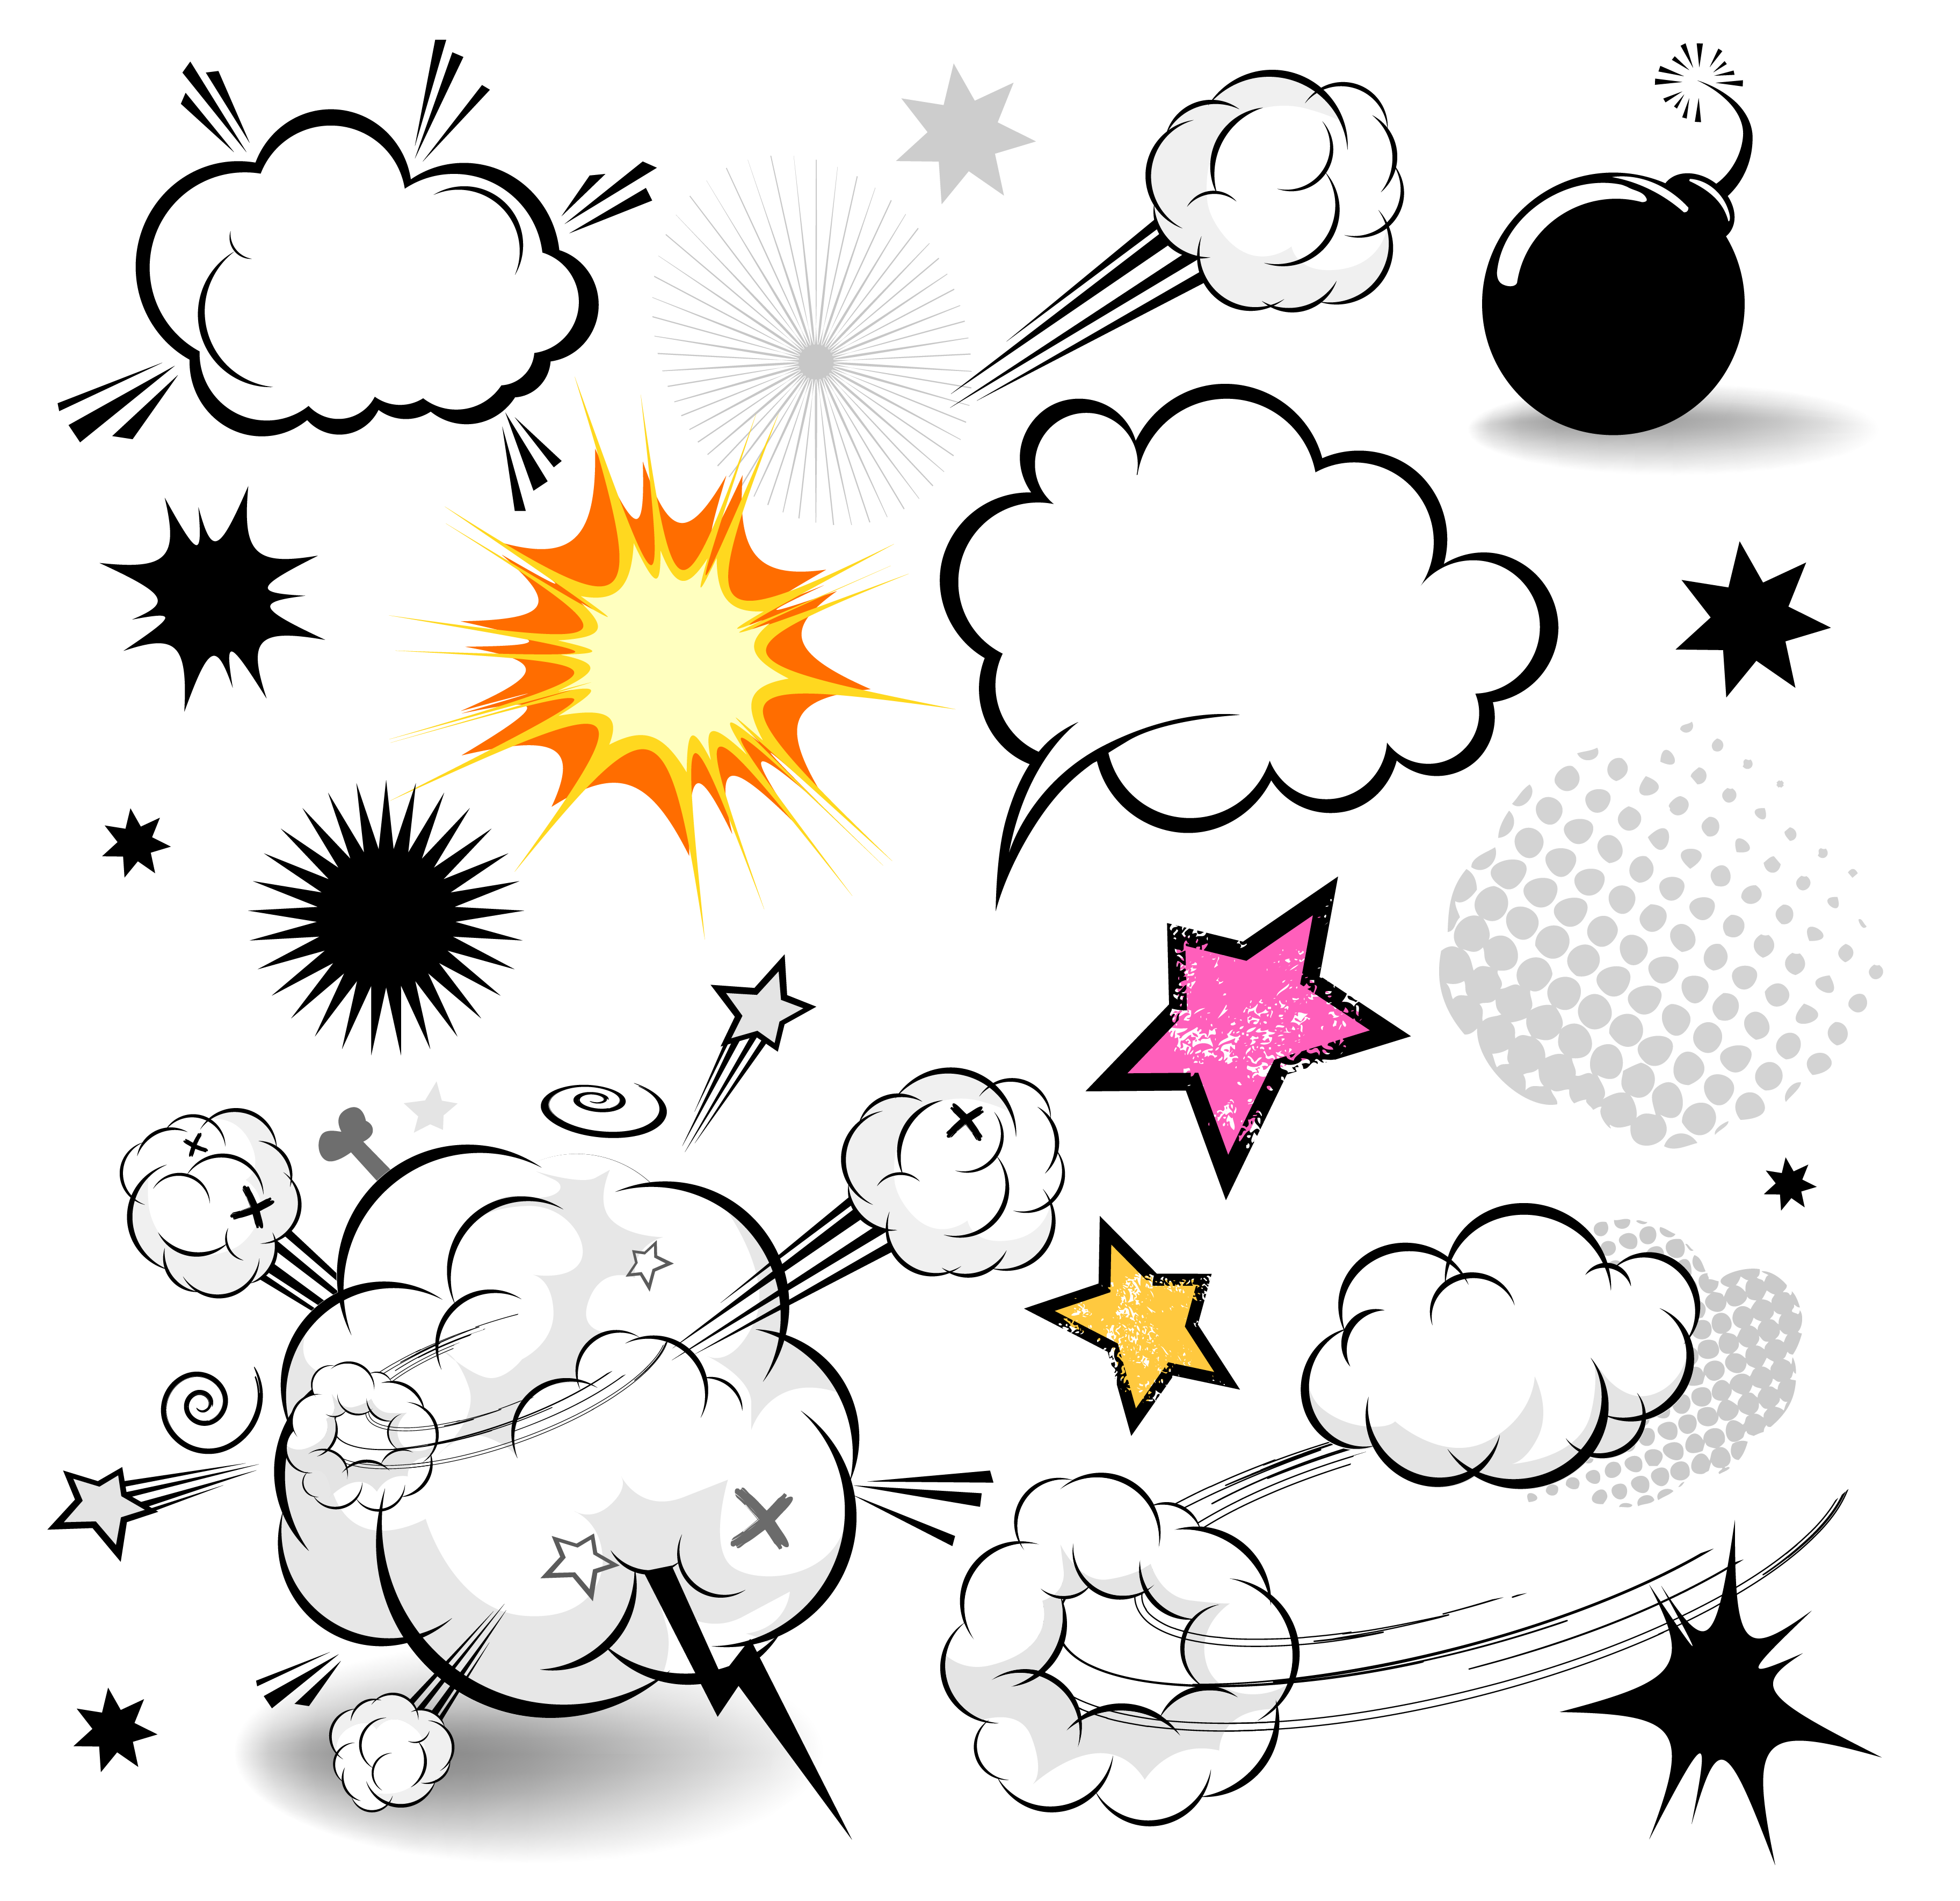 Comics speech balloon cartoon. Clipart cloud comic book